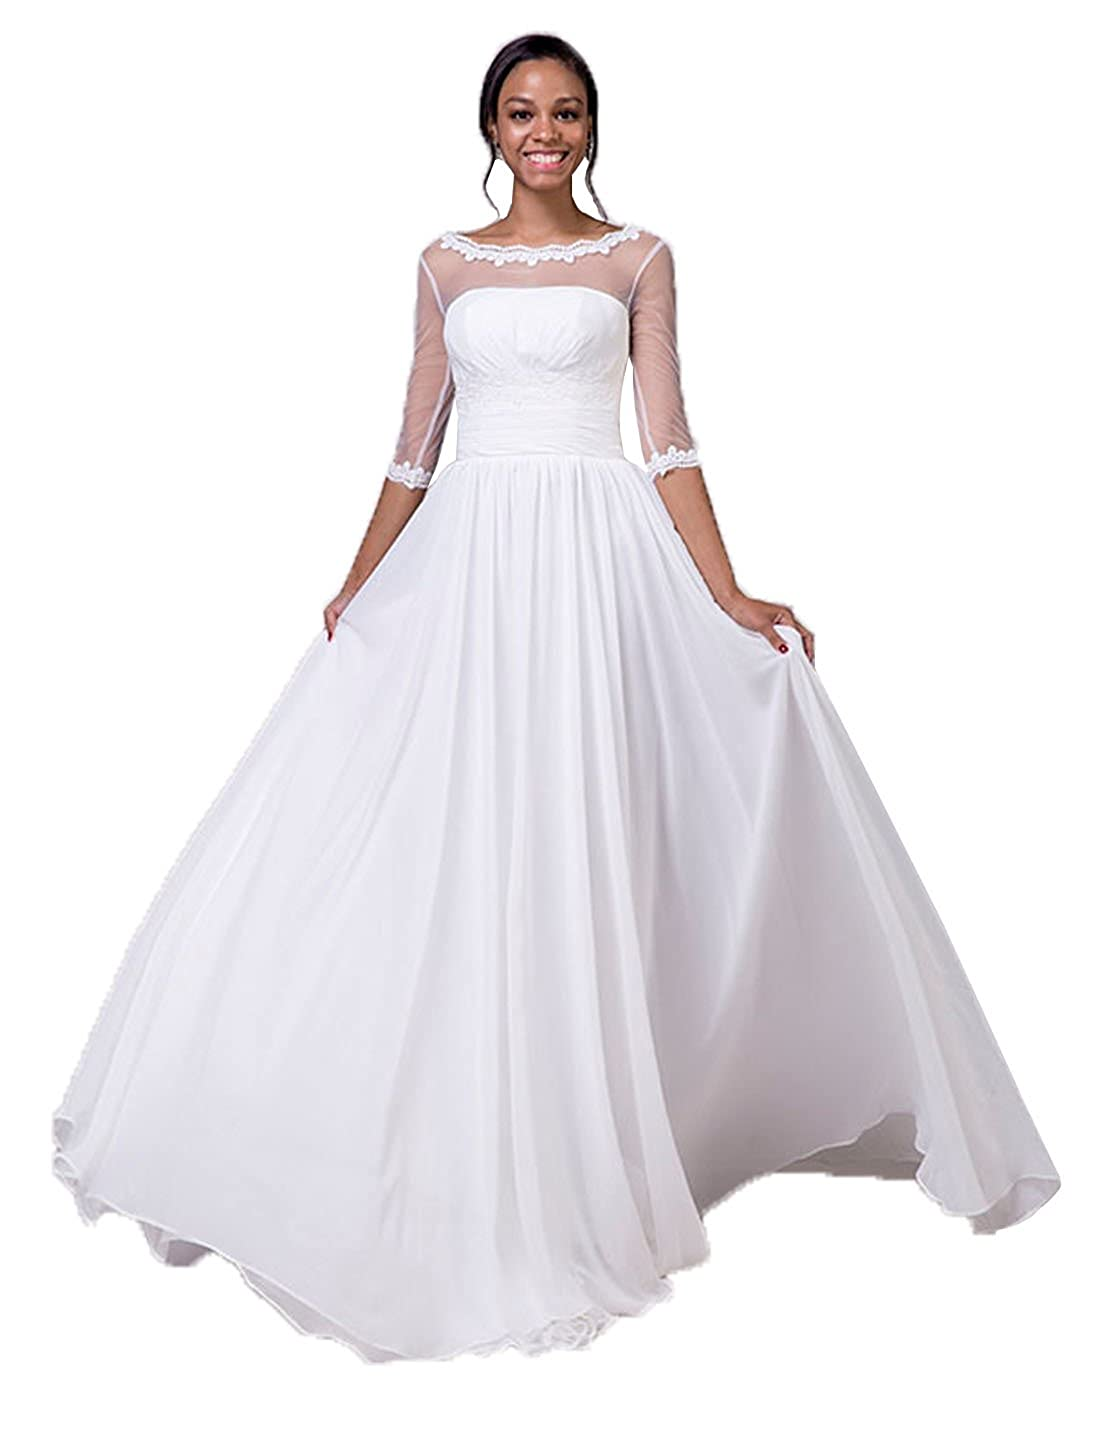 Lorie Wedding Dresses With Sleeves A Line Chiffon Bride Dress Lace